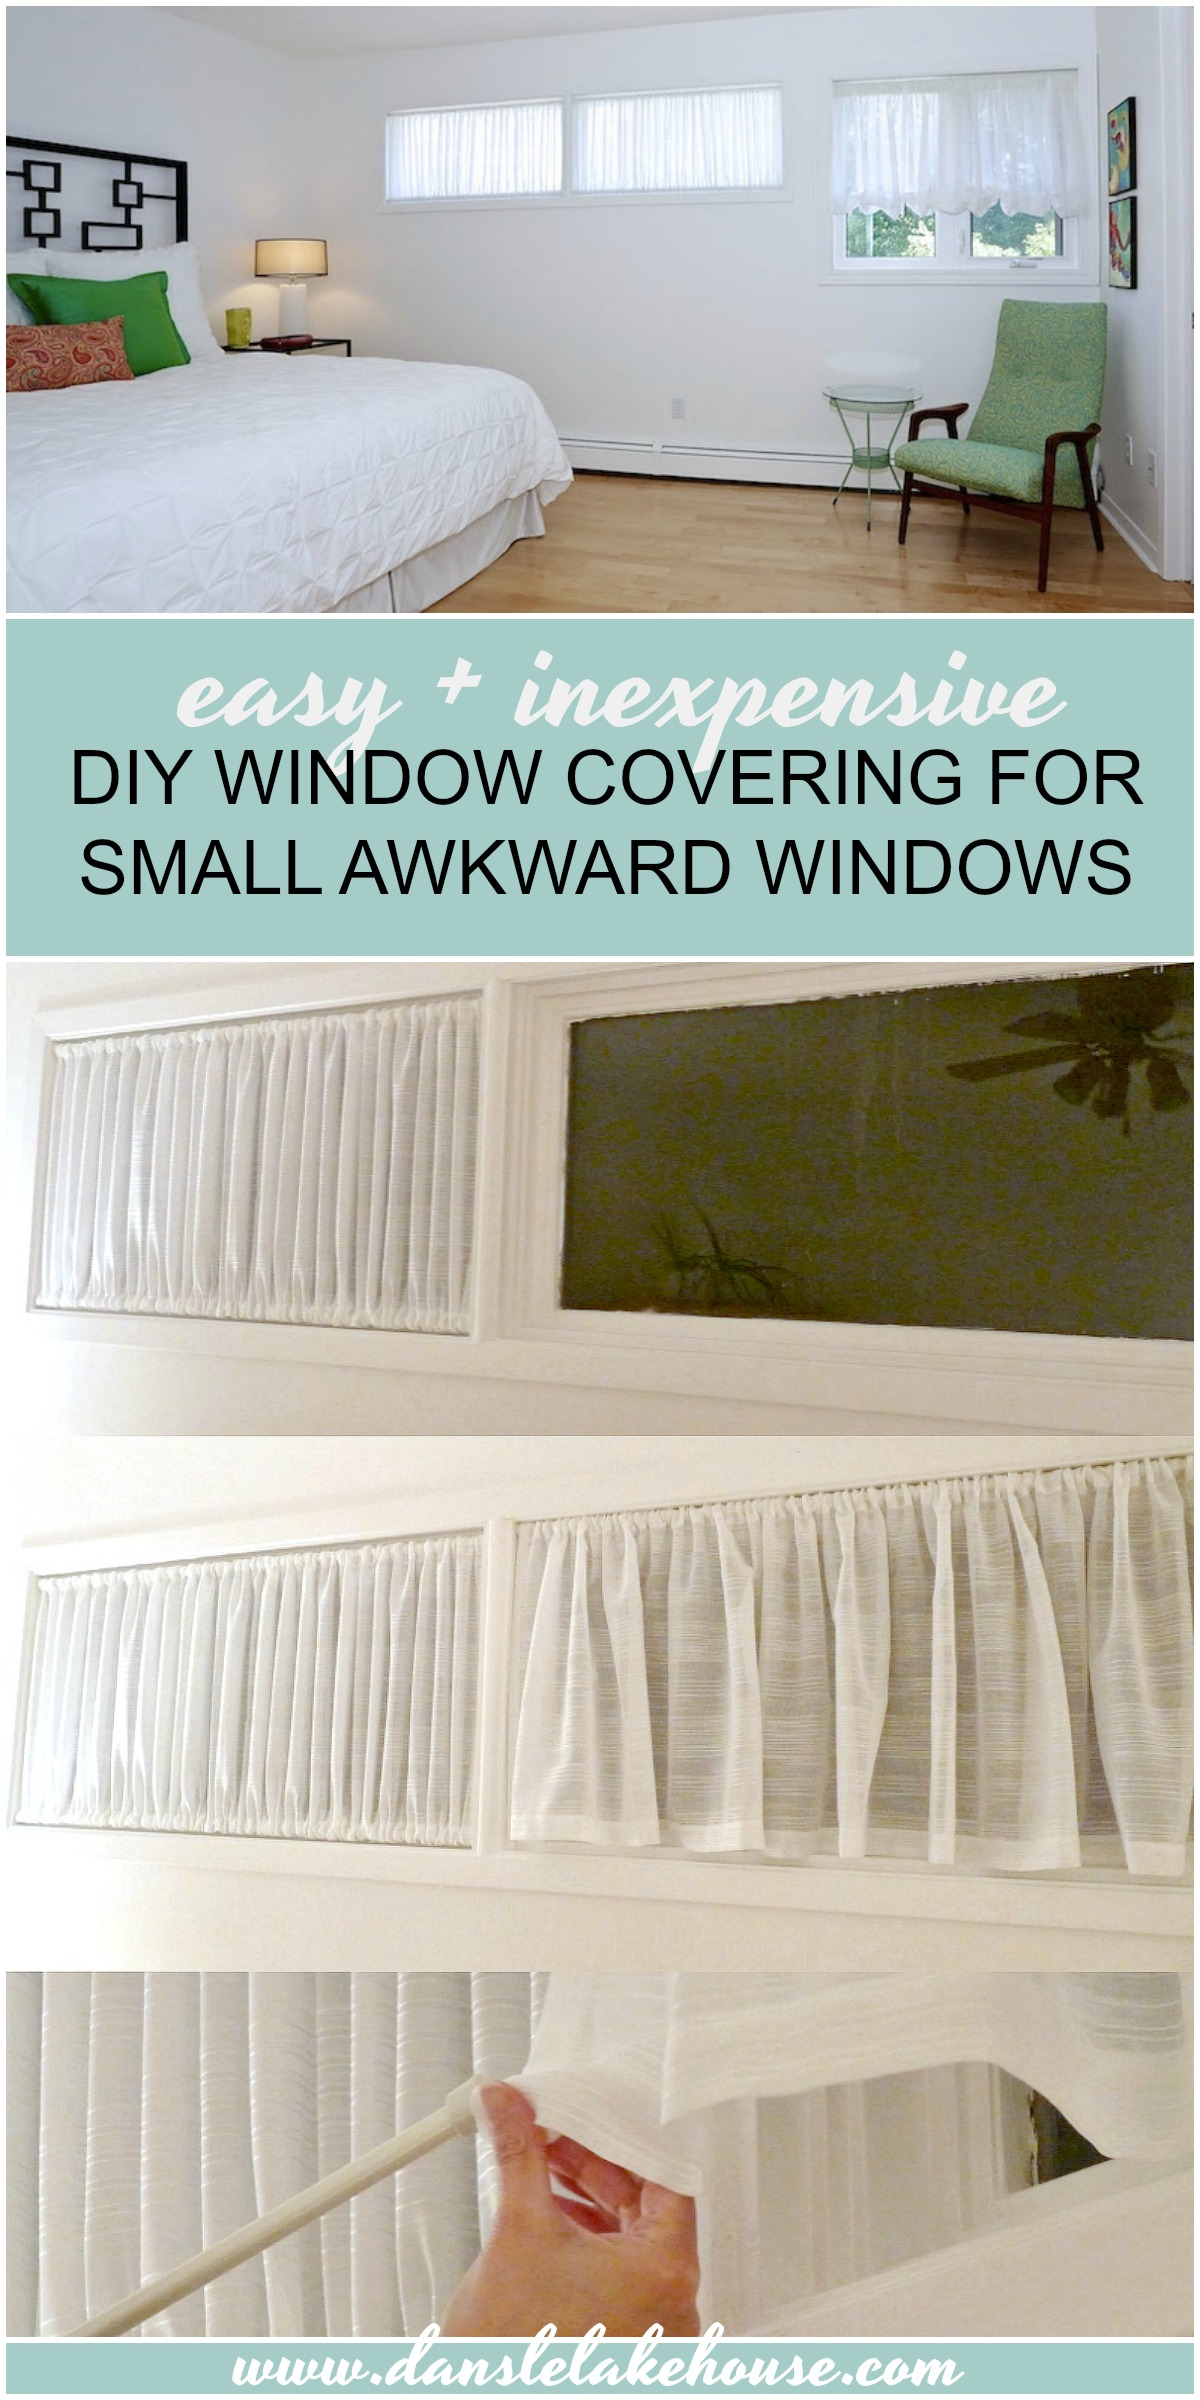 DIY Window Covering for Awkward Windows | Ruched Curtain DIY